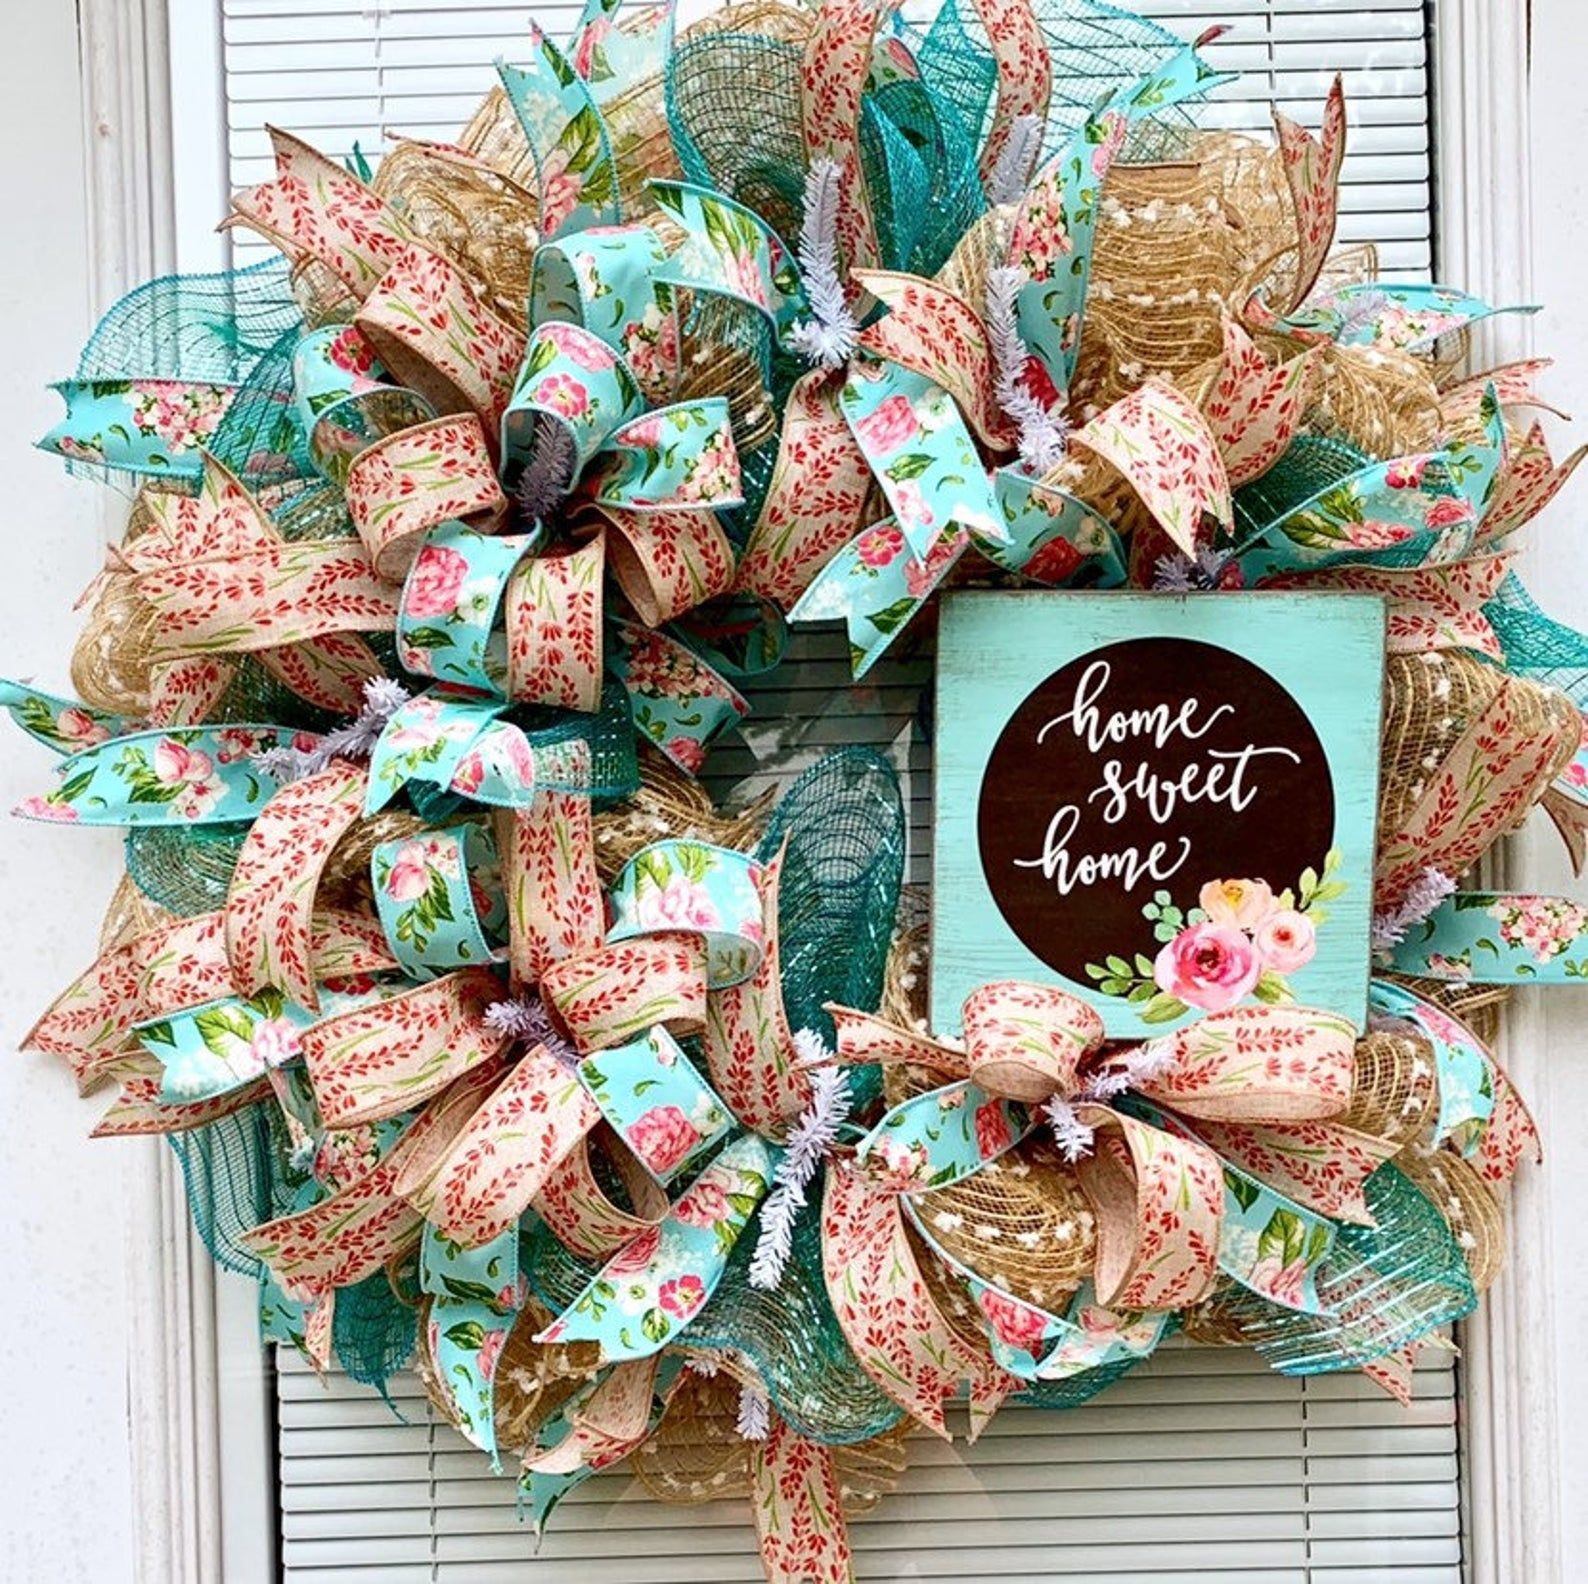 Photo of Burlap Wreath for your door, Deco Mesh Wreath for your door, Summer Wreath, Spring Wreath, Everyday Wreath, Burlap Wreath, Deco Mesh Wreath